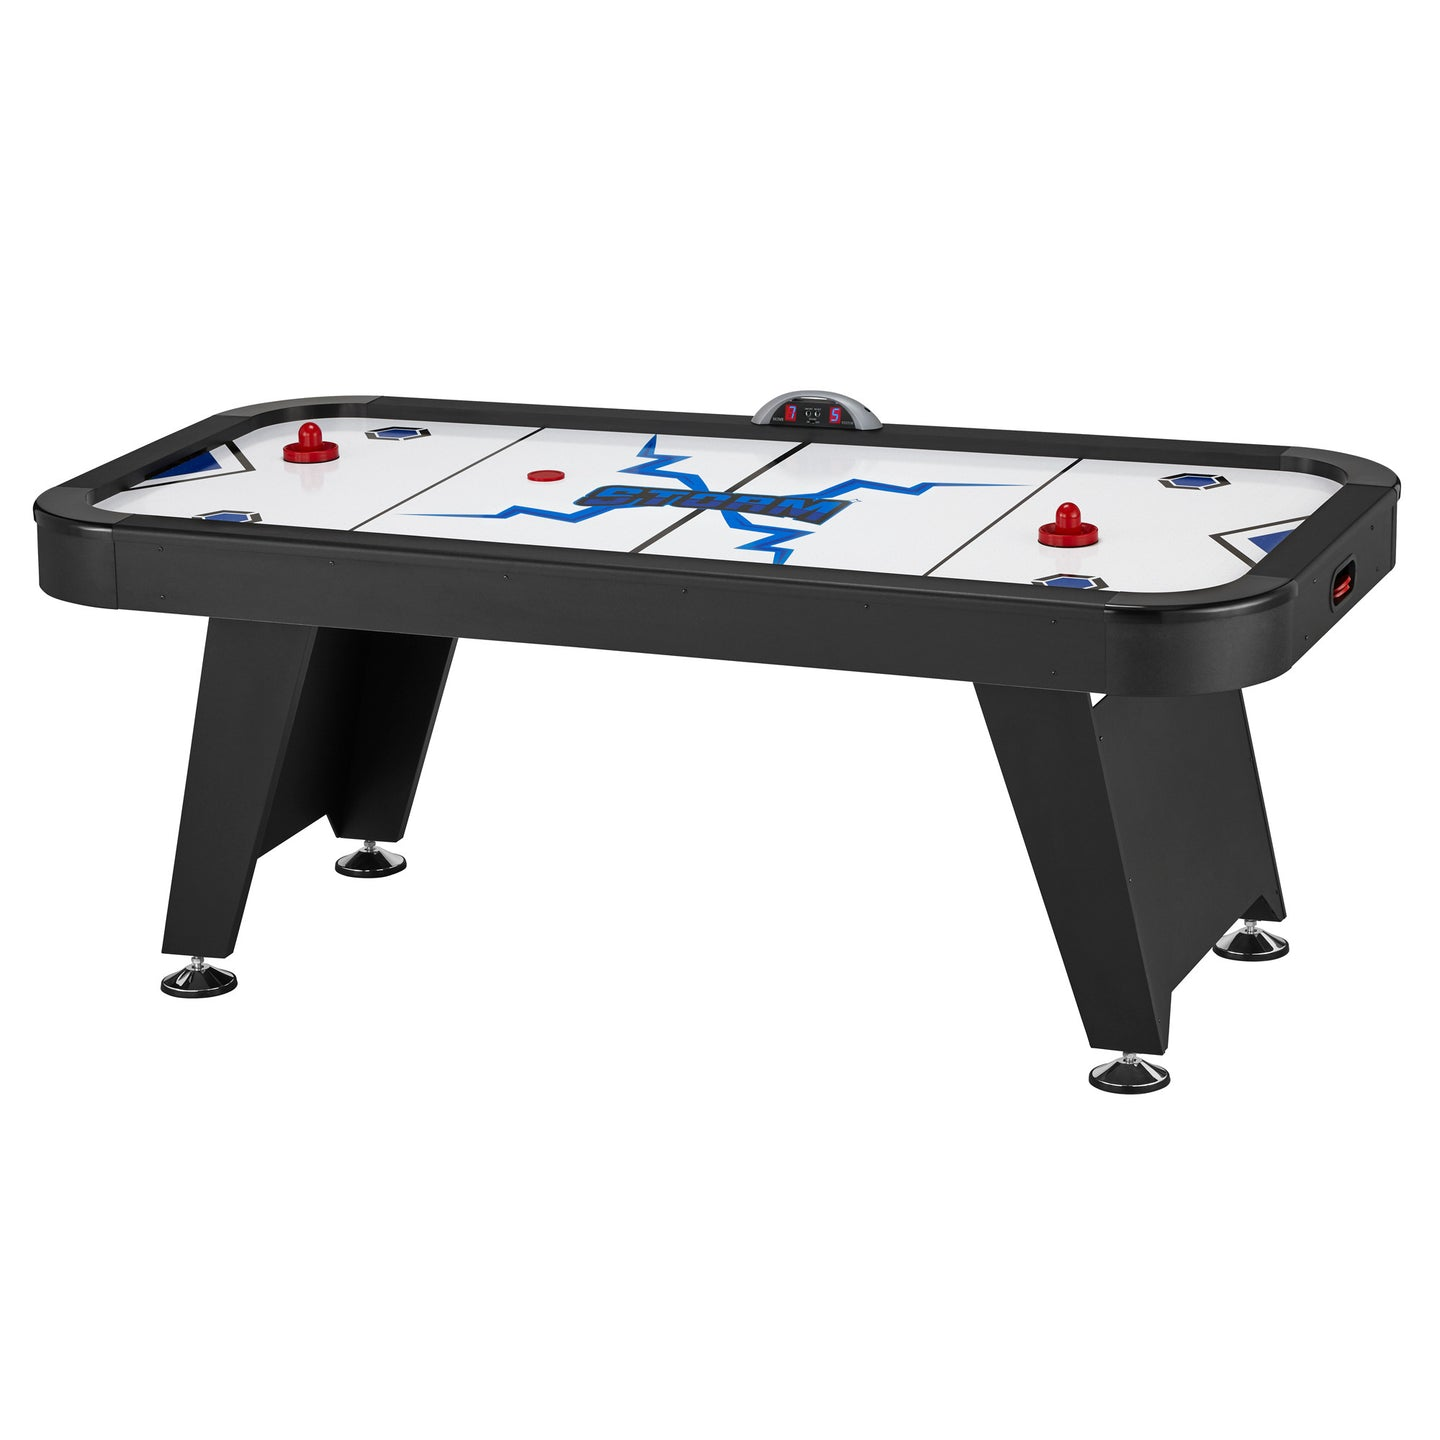 Fat Cat Storm MMXI 7' Air Hockey Table